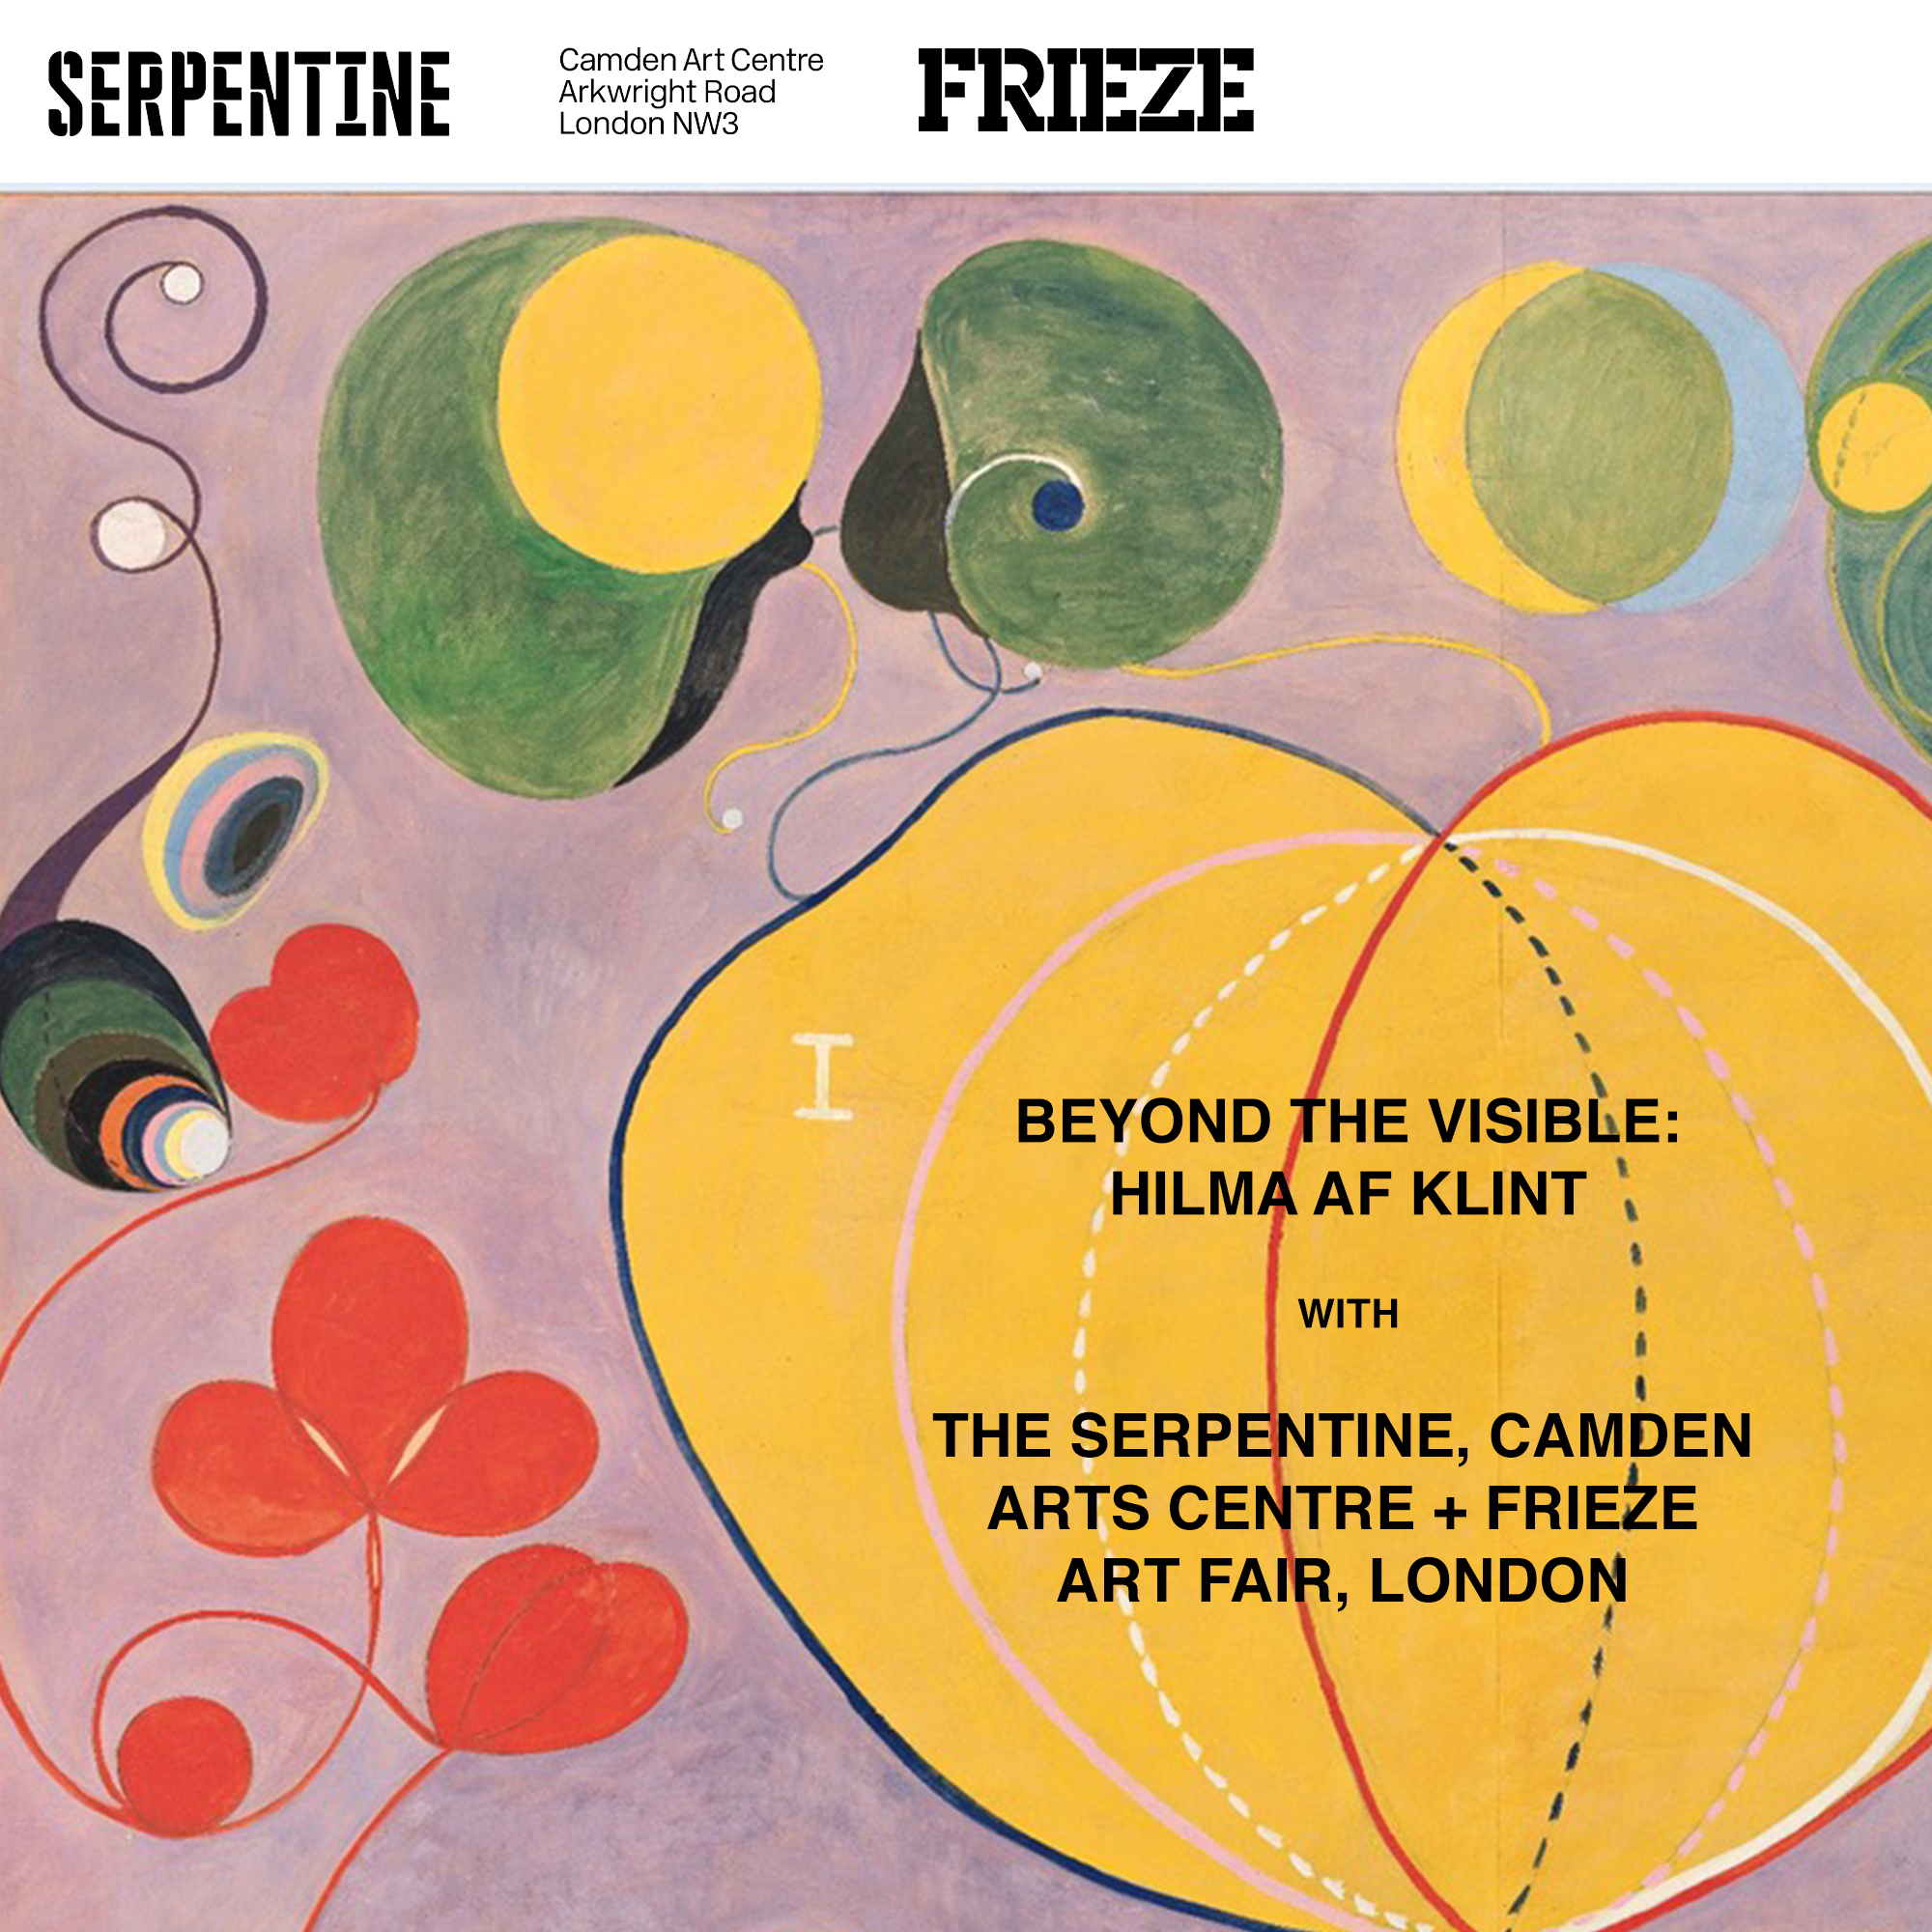 Beyond the Visible: Hilma af Klint with The Serpentine, Camden Arts Centre and Frieze London